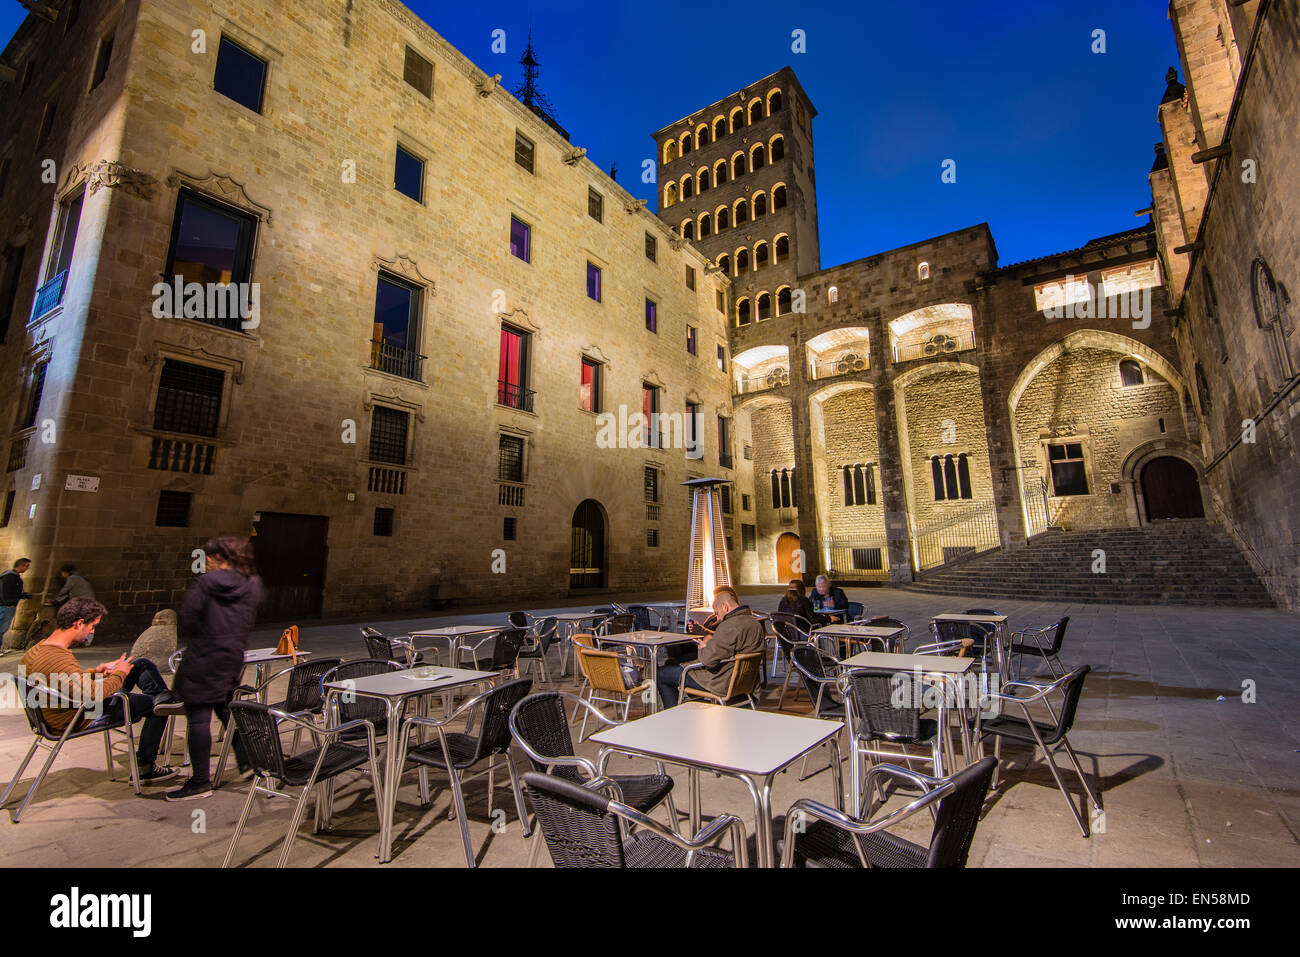 Night view of Plaza del Rey or Placa del Rei with people seated in an outdoor cafe, Barcelona, Catalonia, Spain - Stock Image